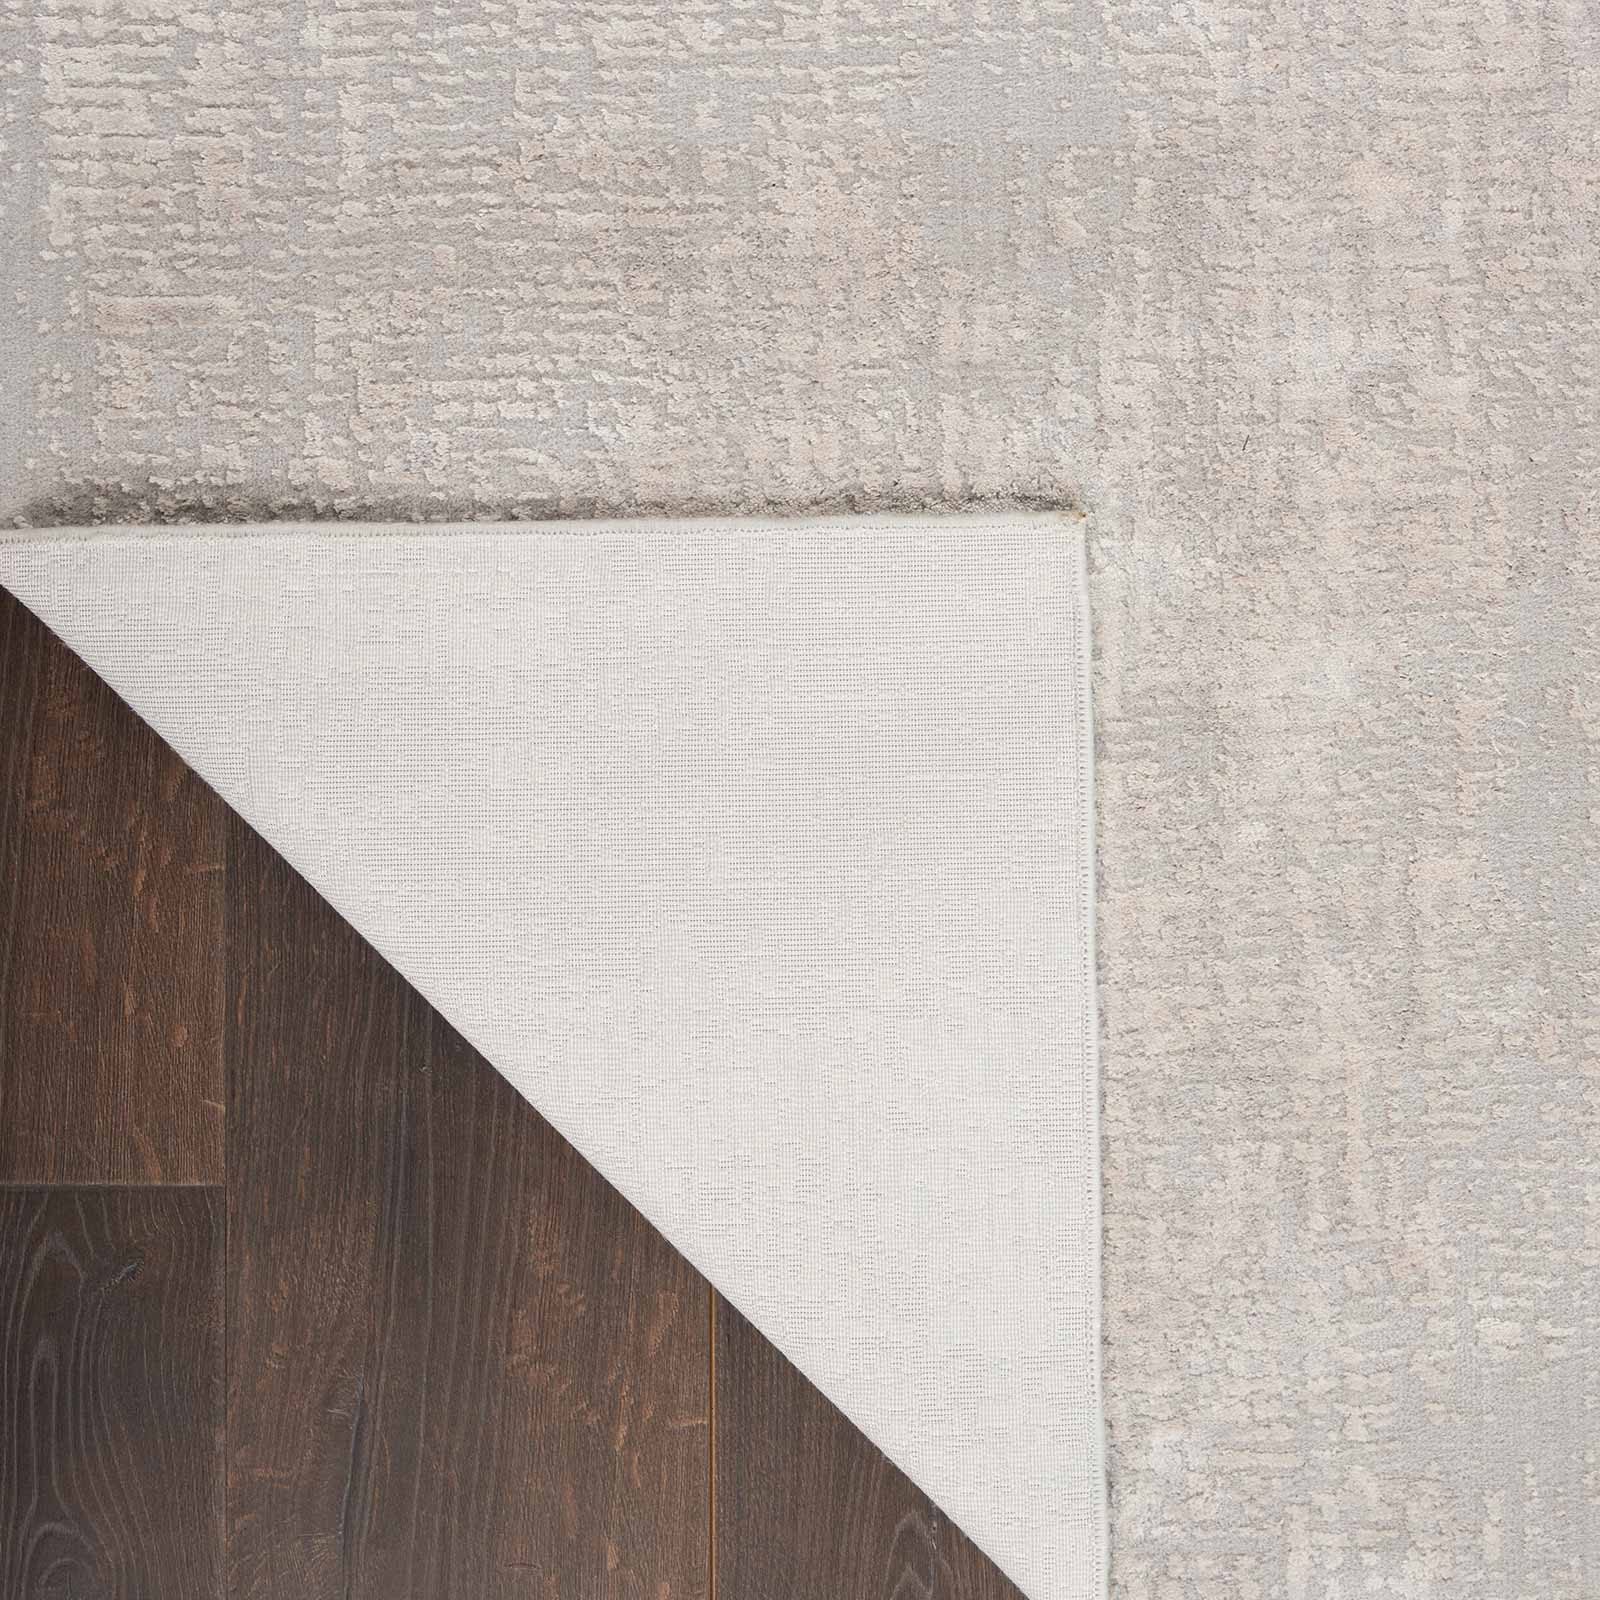 Nourison rug Silky Textures SLY01 IVORY GREY 5x7 099446709837 CRB C